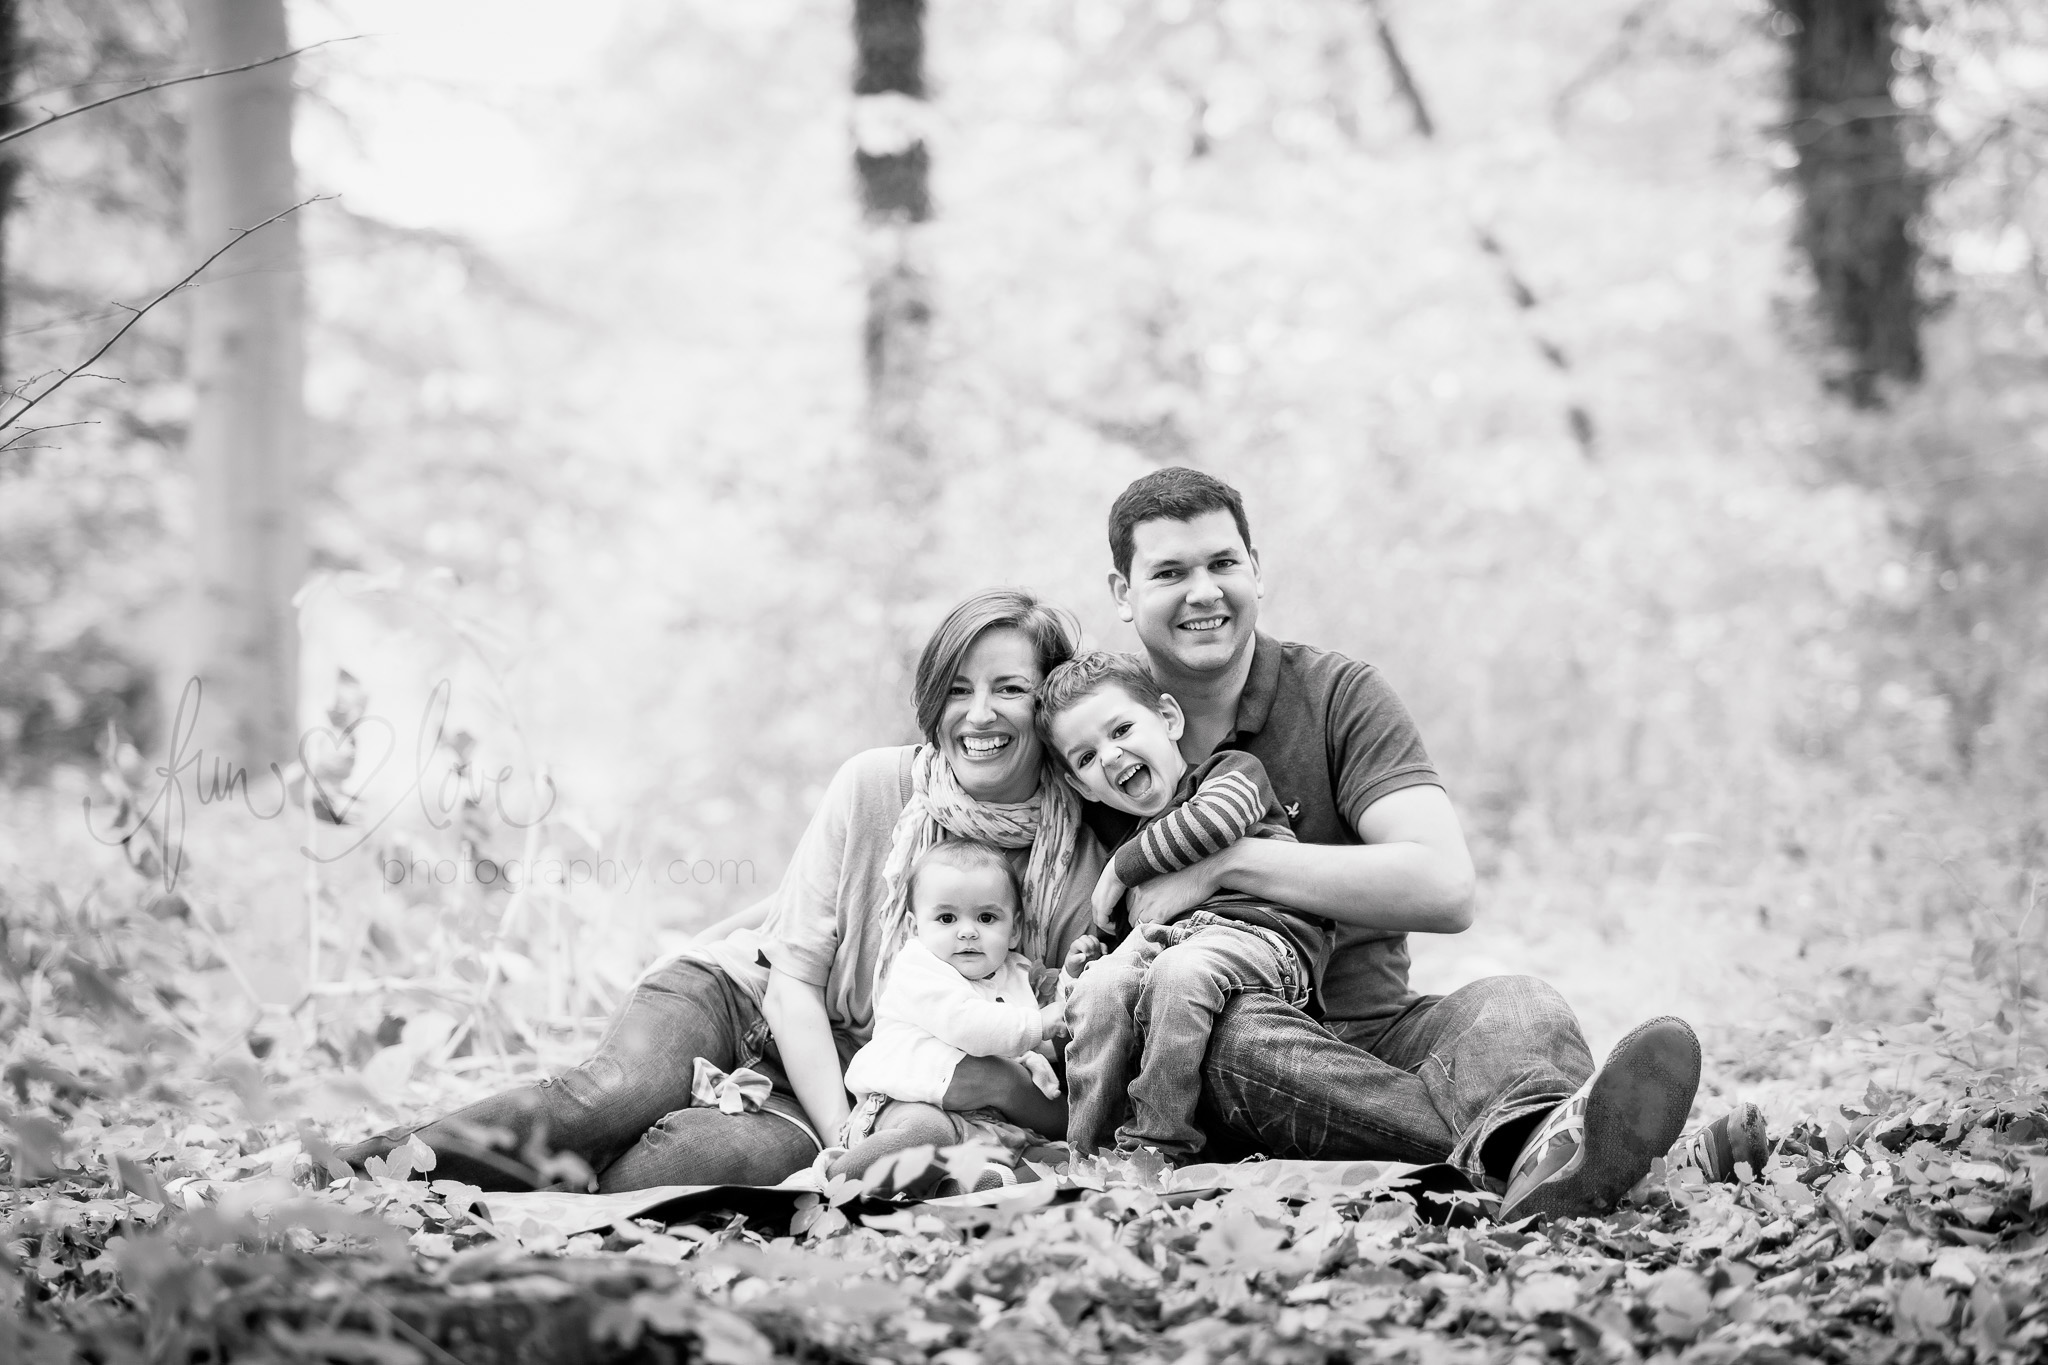 Natural Family Photography in the forest